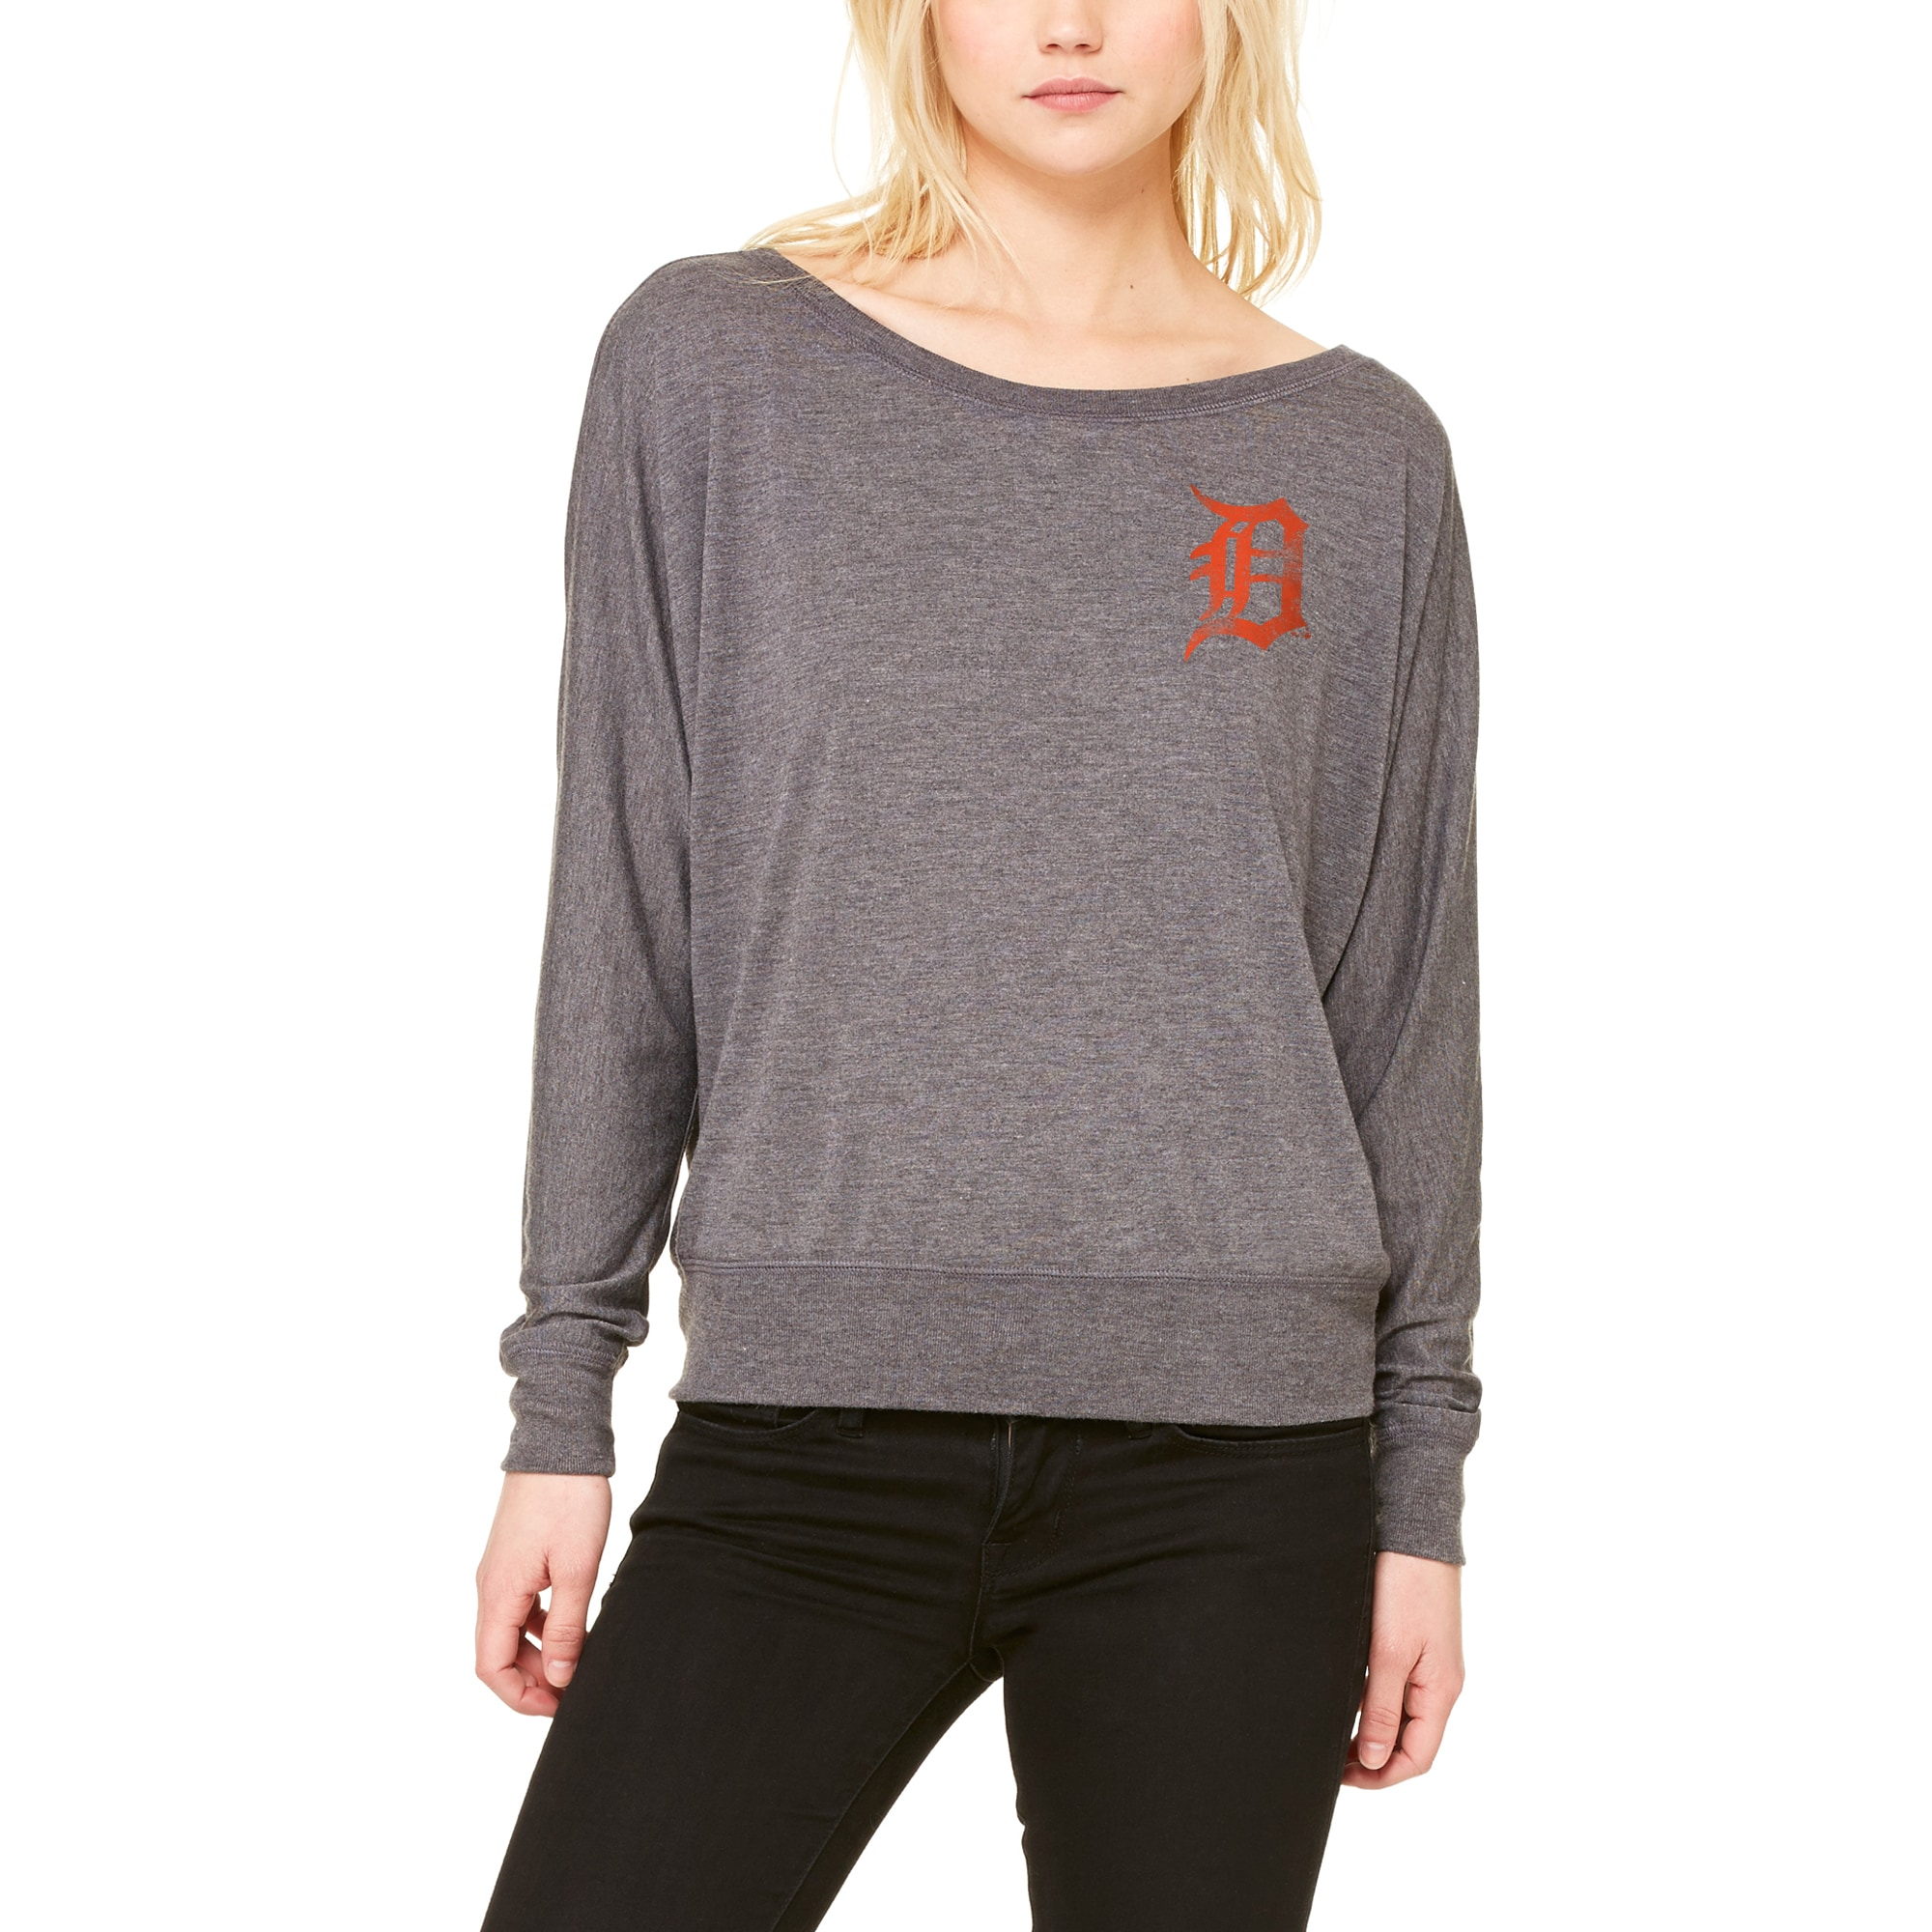 Detroit Tigers Let Loose by RNL Women's Winning Off-Shoulder Long Sleeve T-Shirt - Dark Heathered Gray